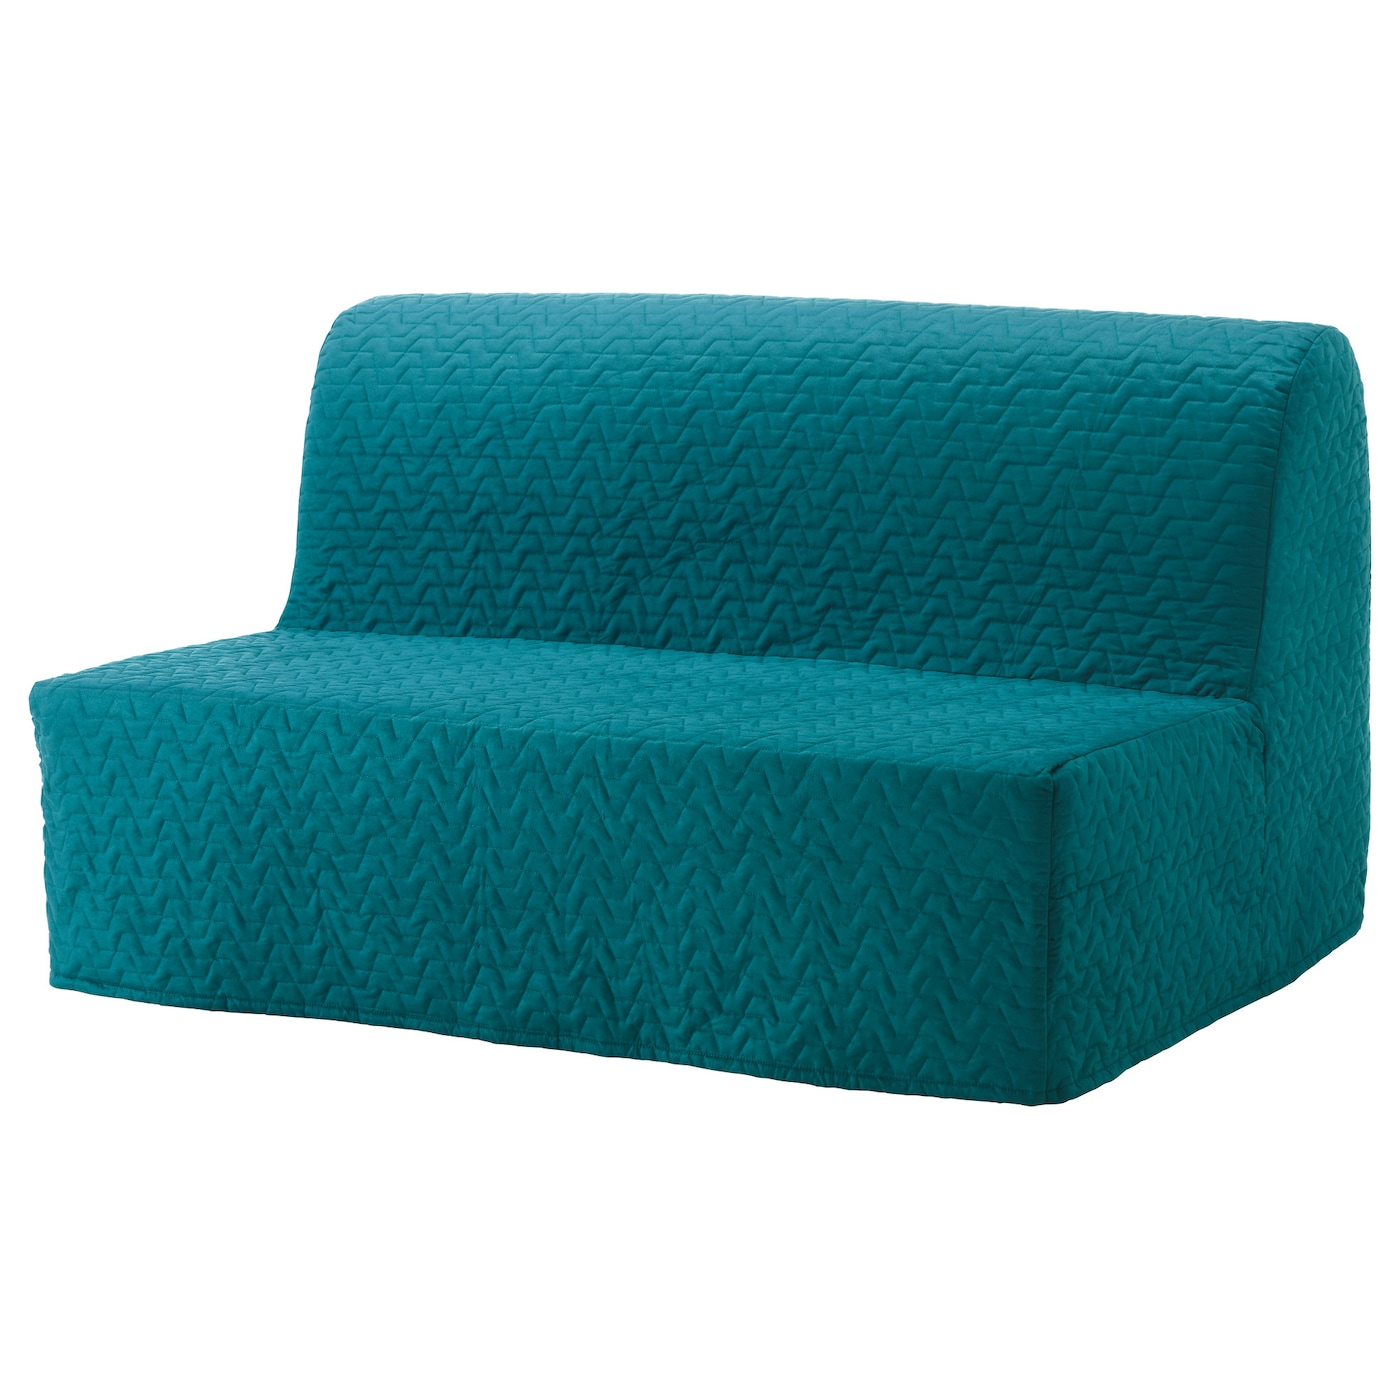 lycksele two seat sofa bed cover vallarum turquoise ikea. Black Bedroom Furniture Sets. Home Design Ideas